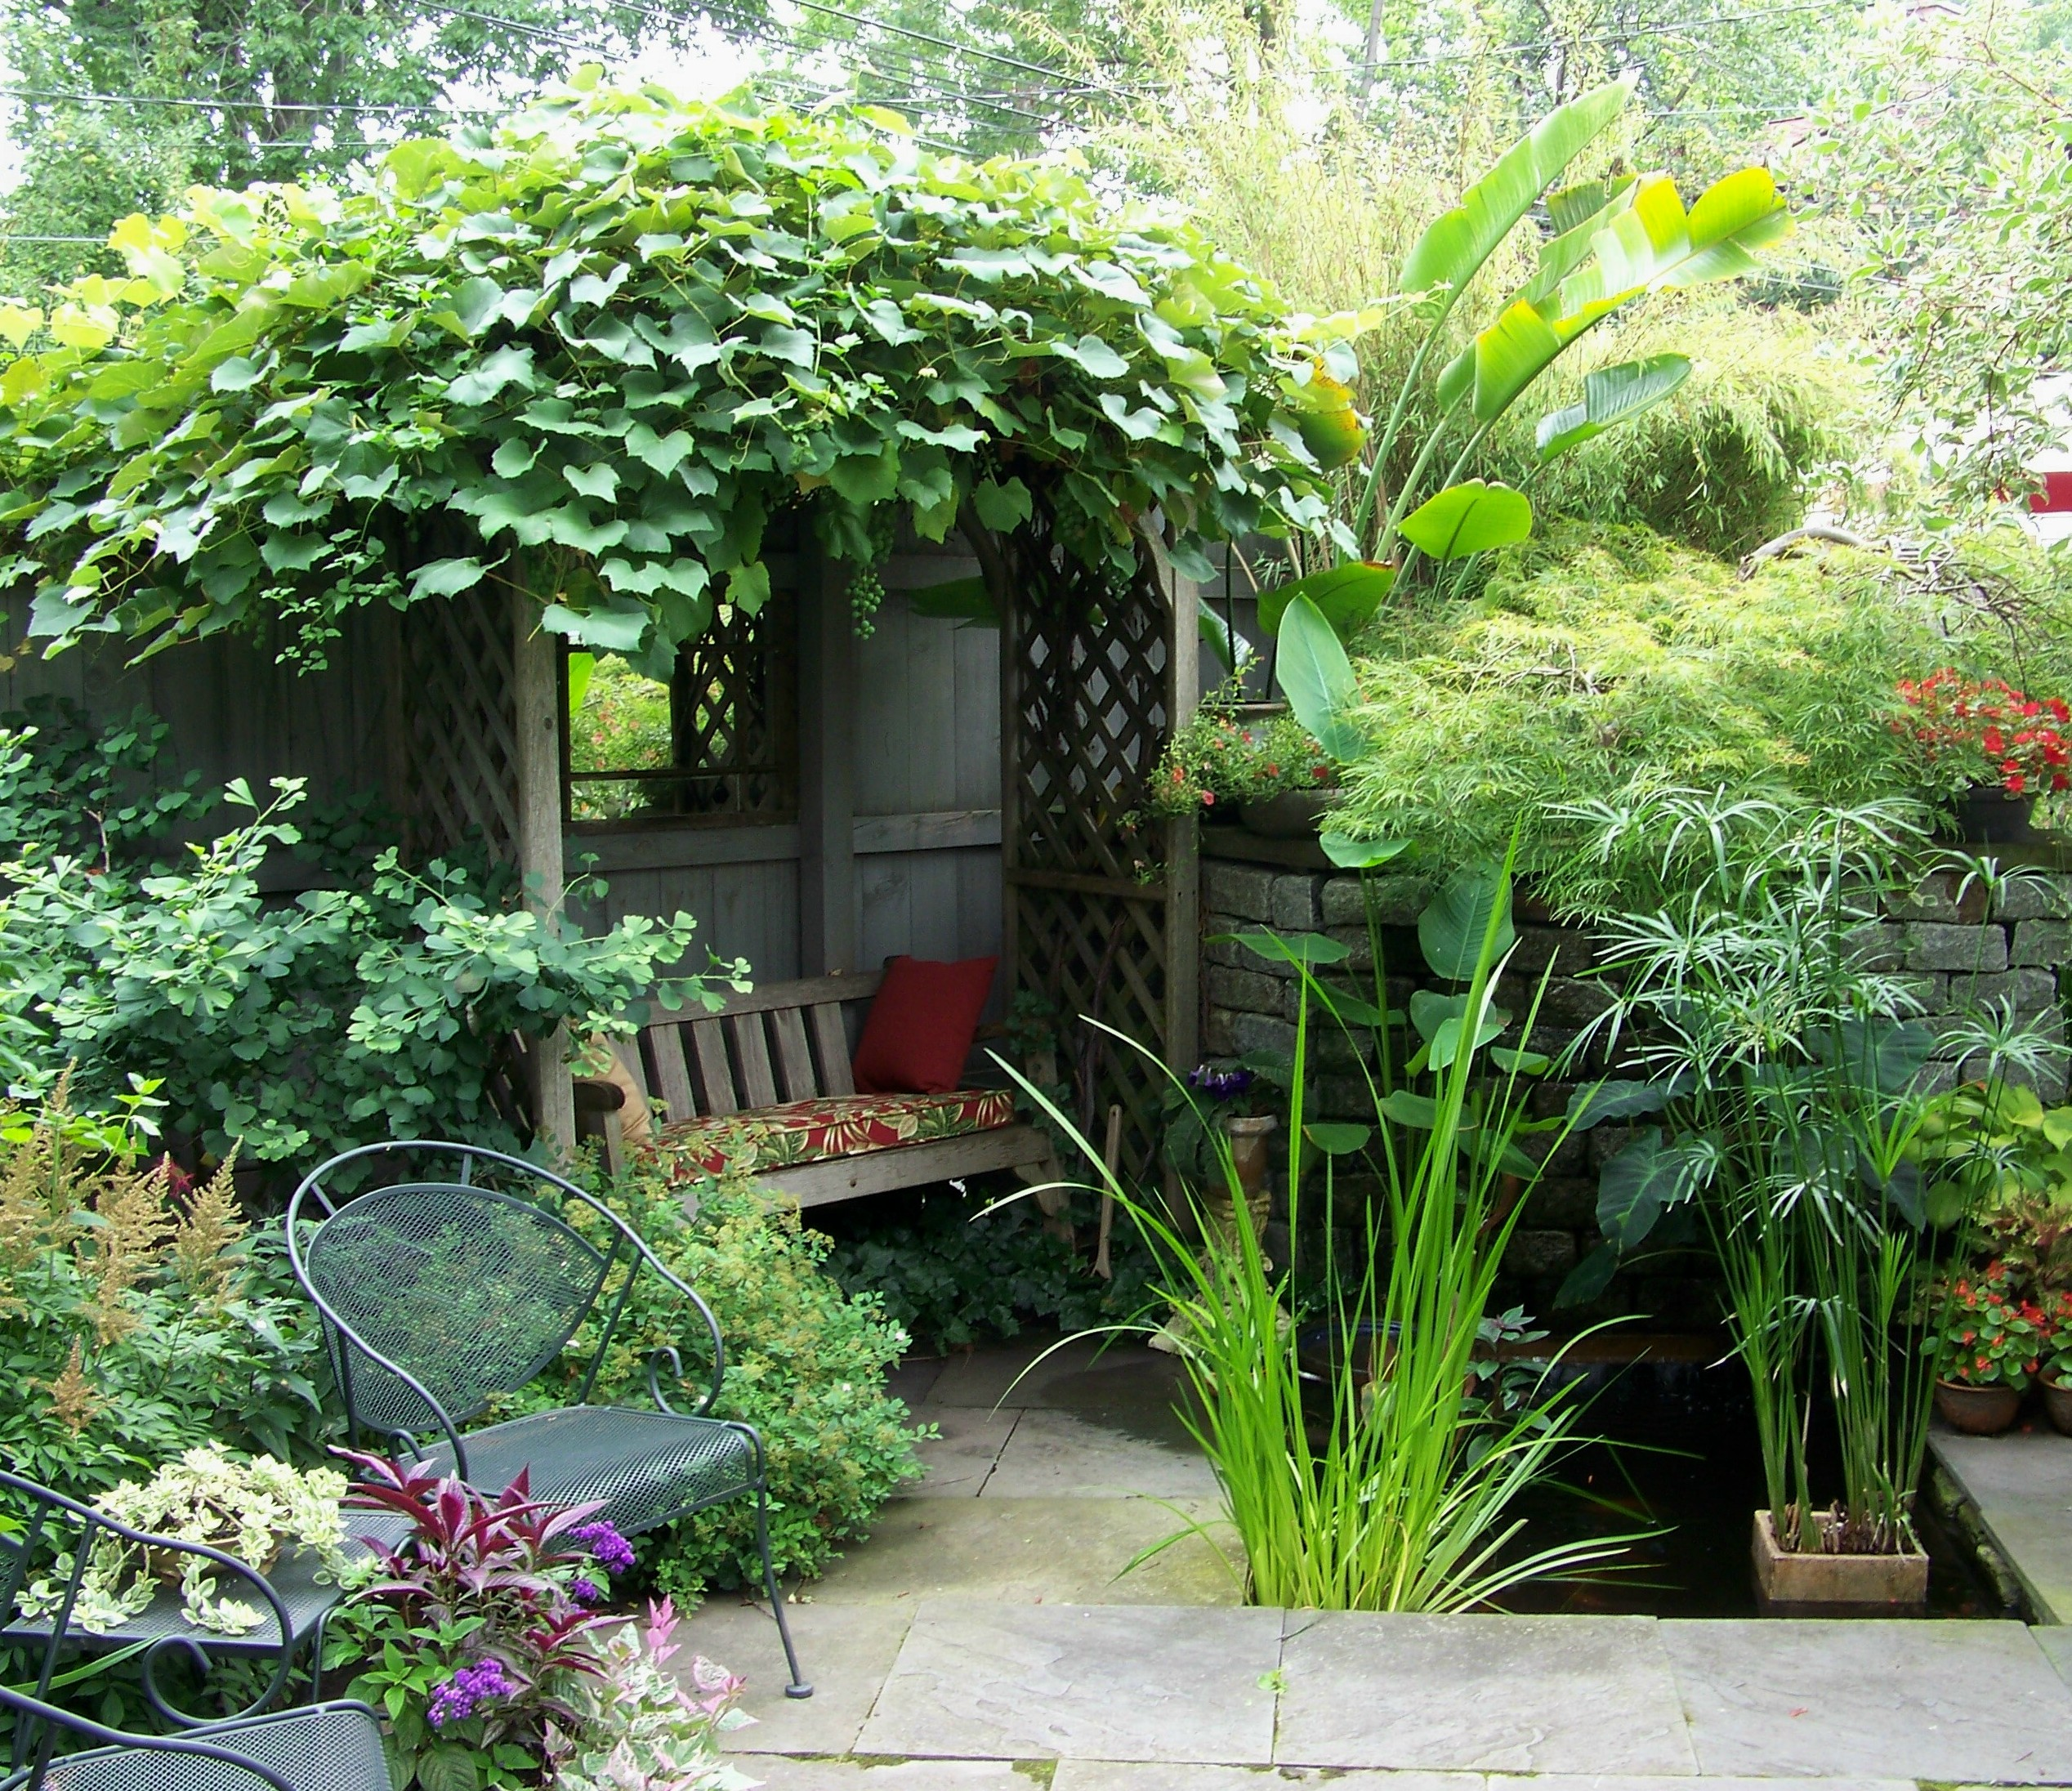 Hamburg Garden Walk 2016: July 30th & 31st 2016